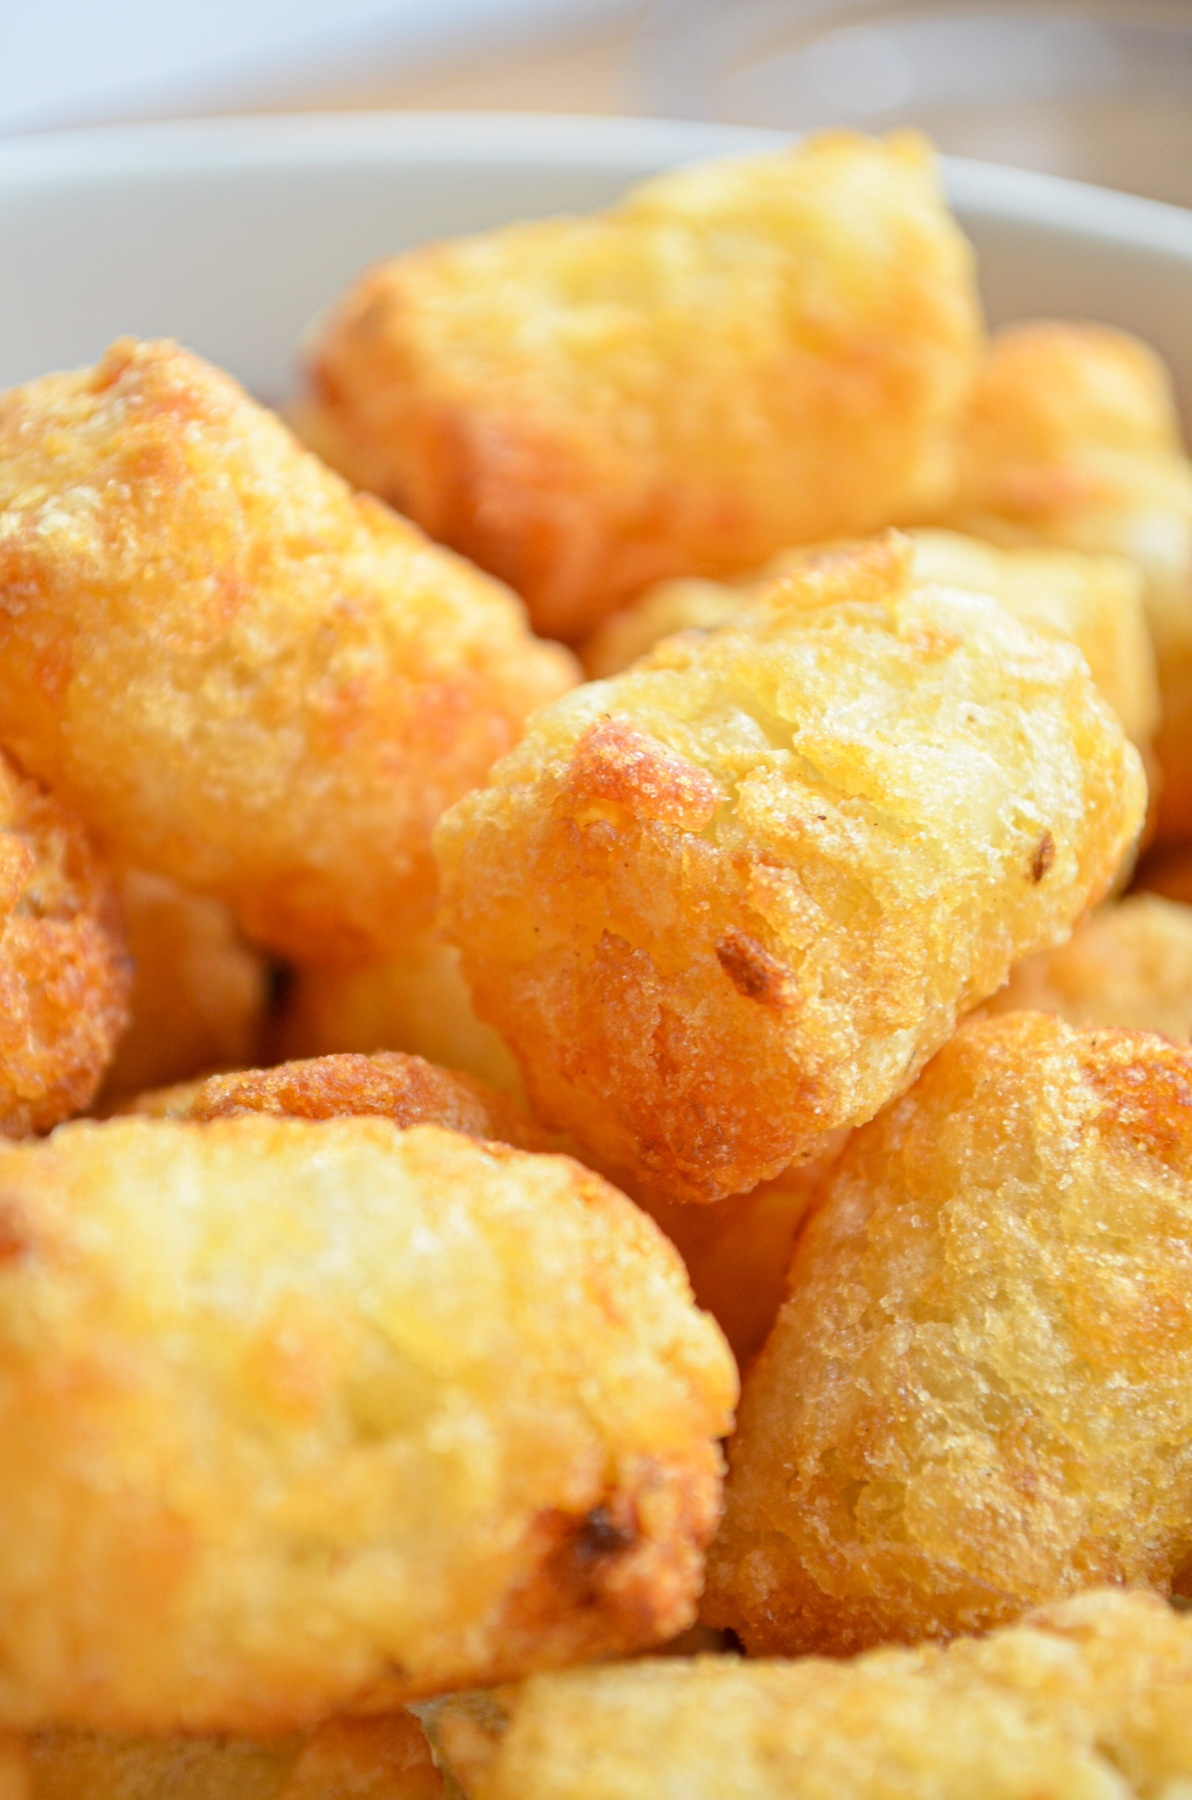 A bowl of cooked golden tater tots.